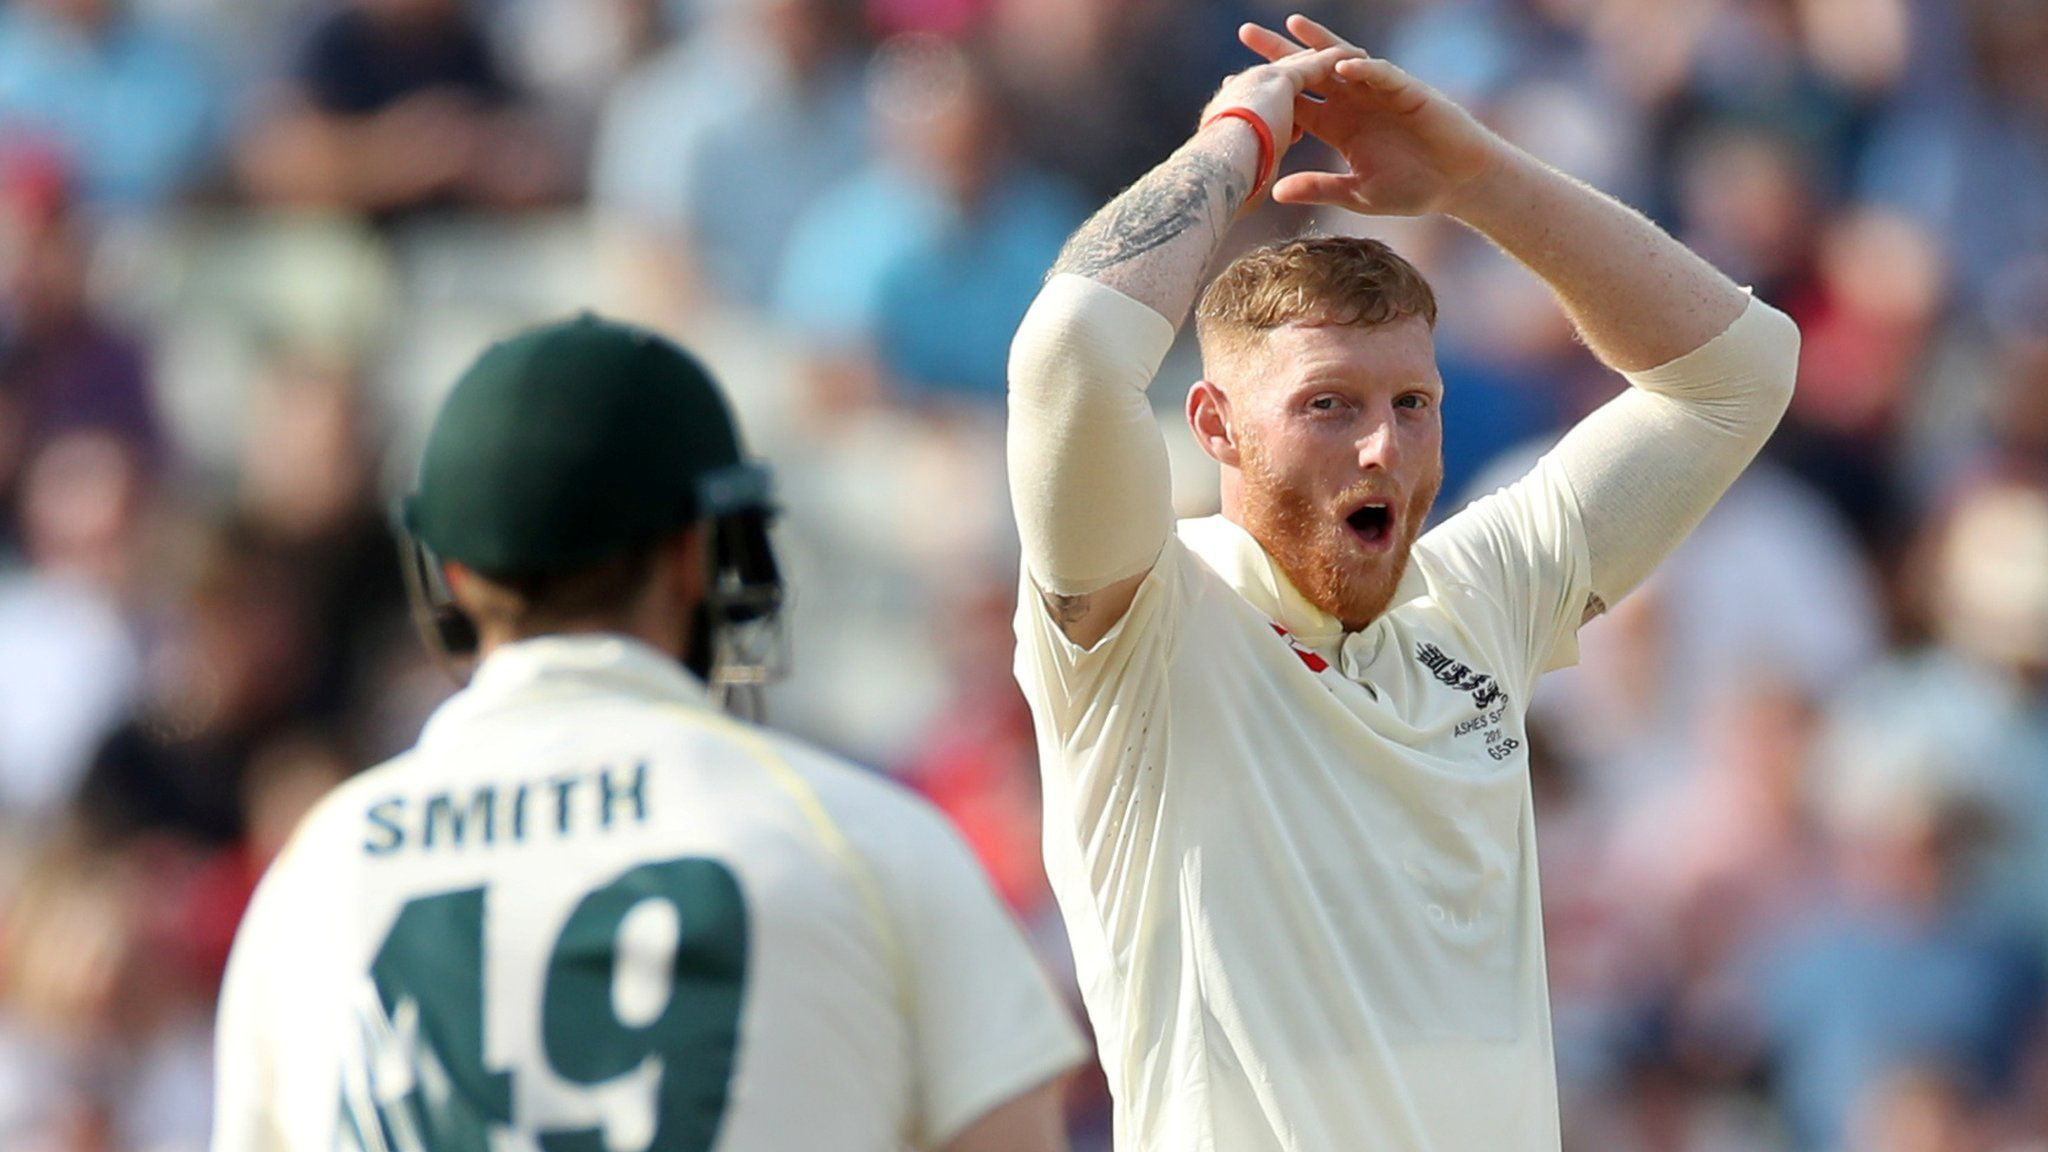 Ashes 2019: Australia lead England by 34 in first Test - BBC